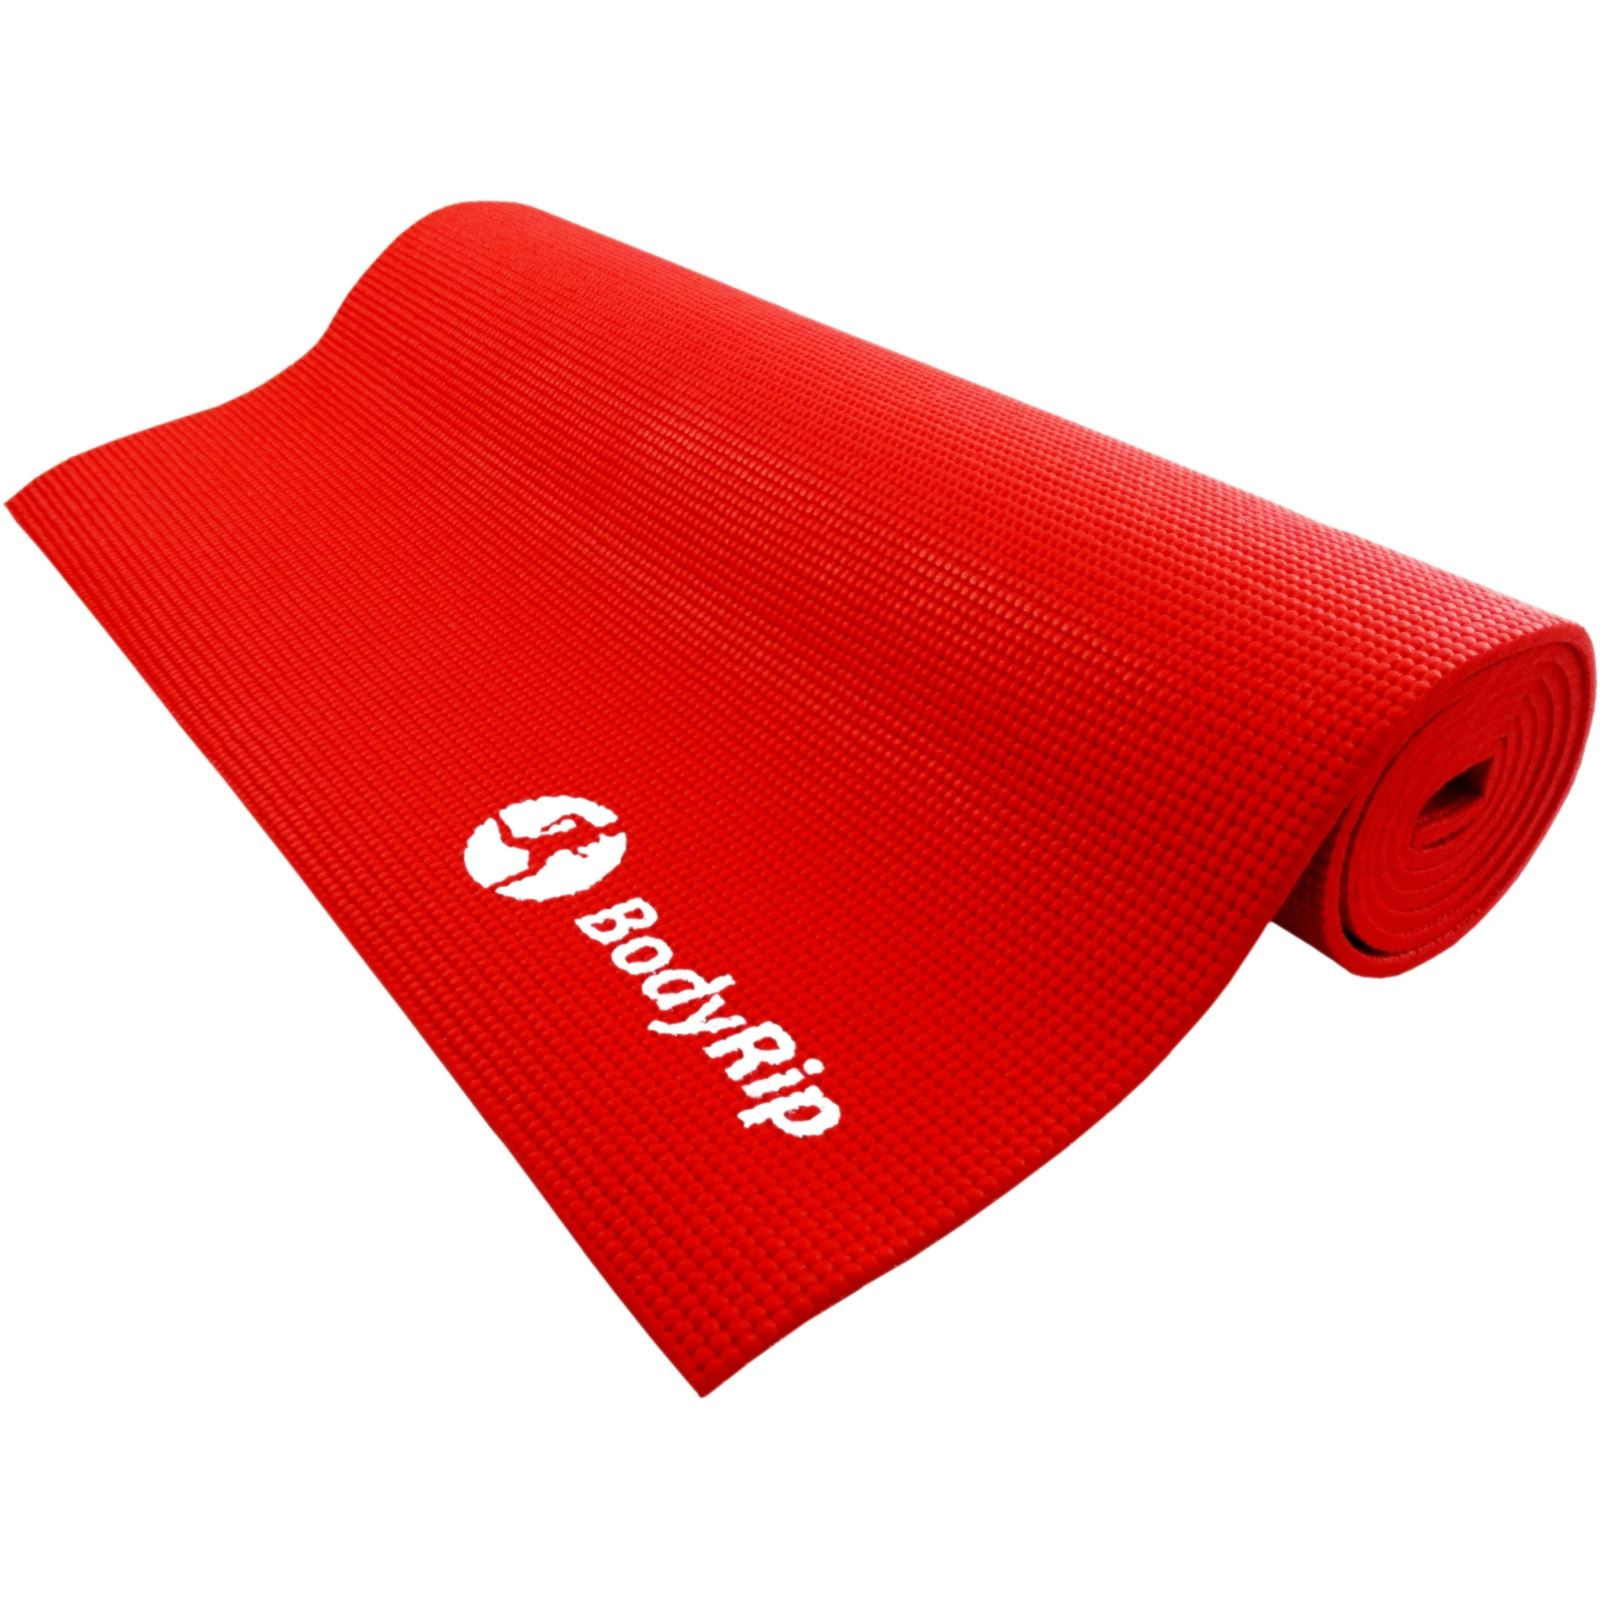 BodyRip RED THICK FOAM YOGA PILATES GYM MAT 6mm EXERCISE